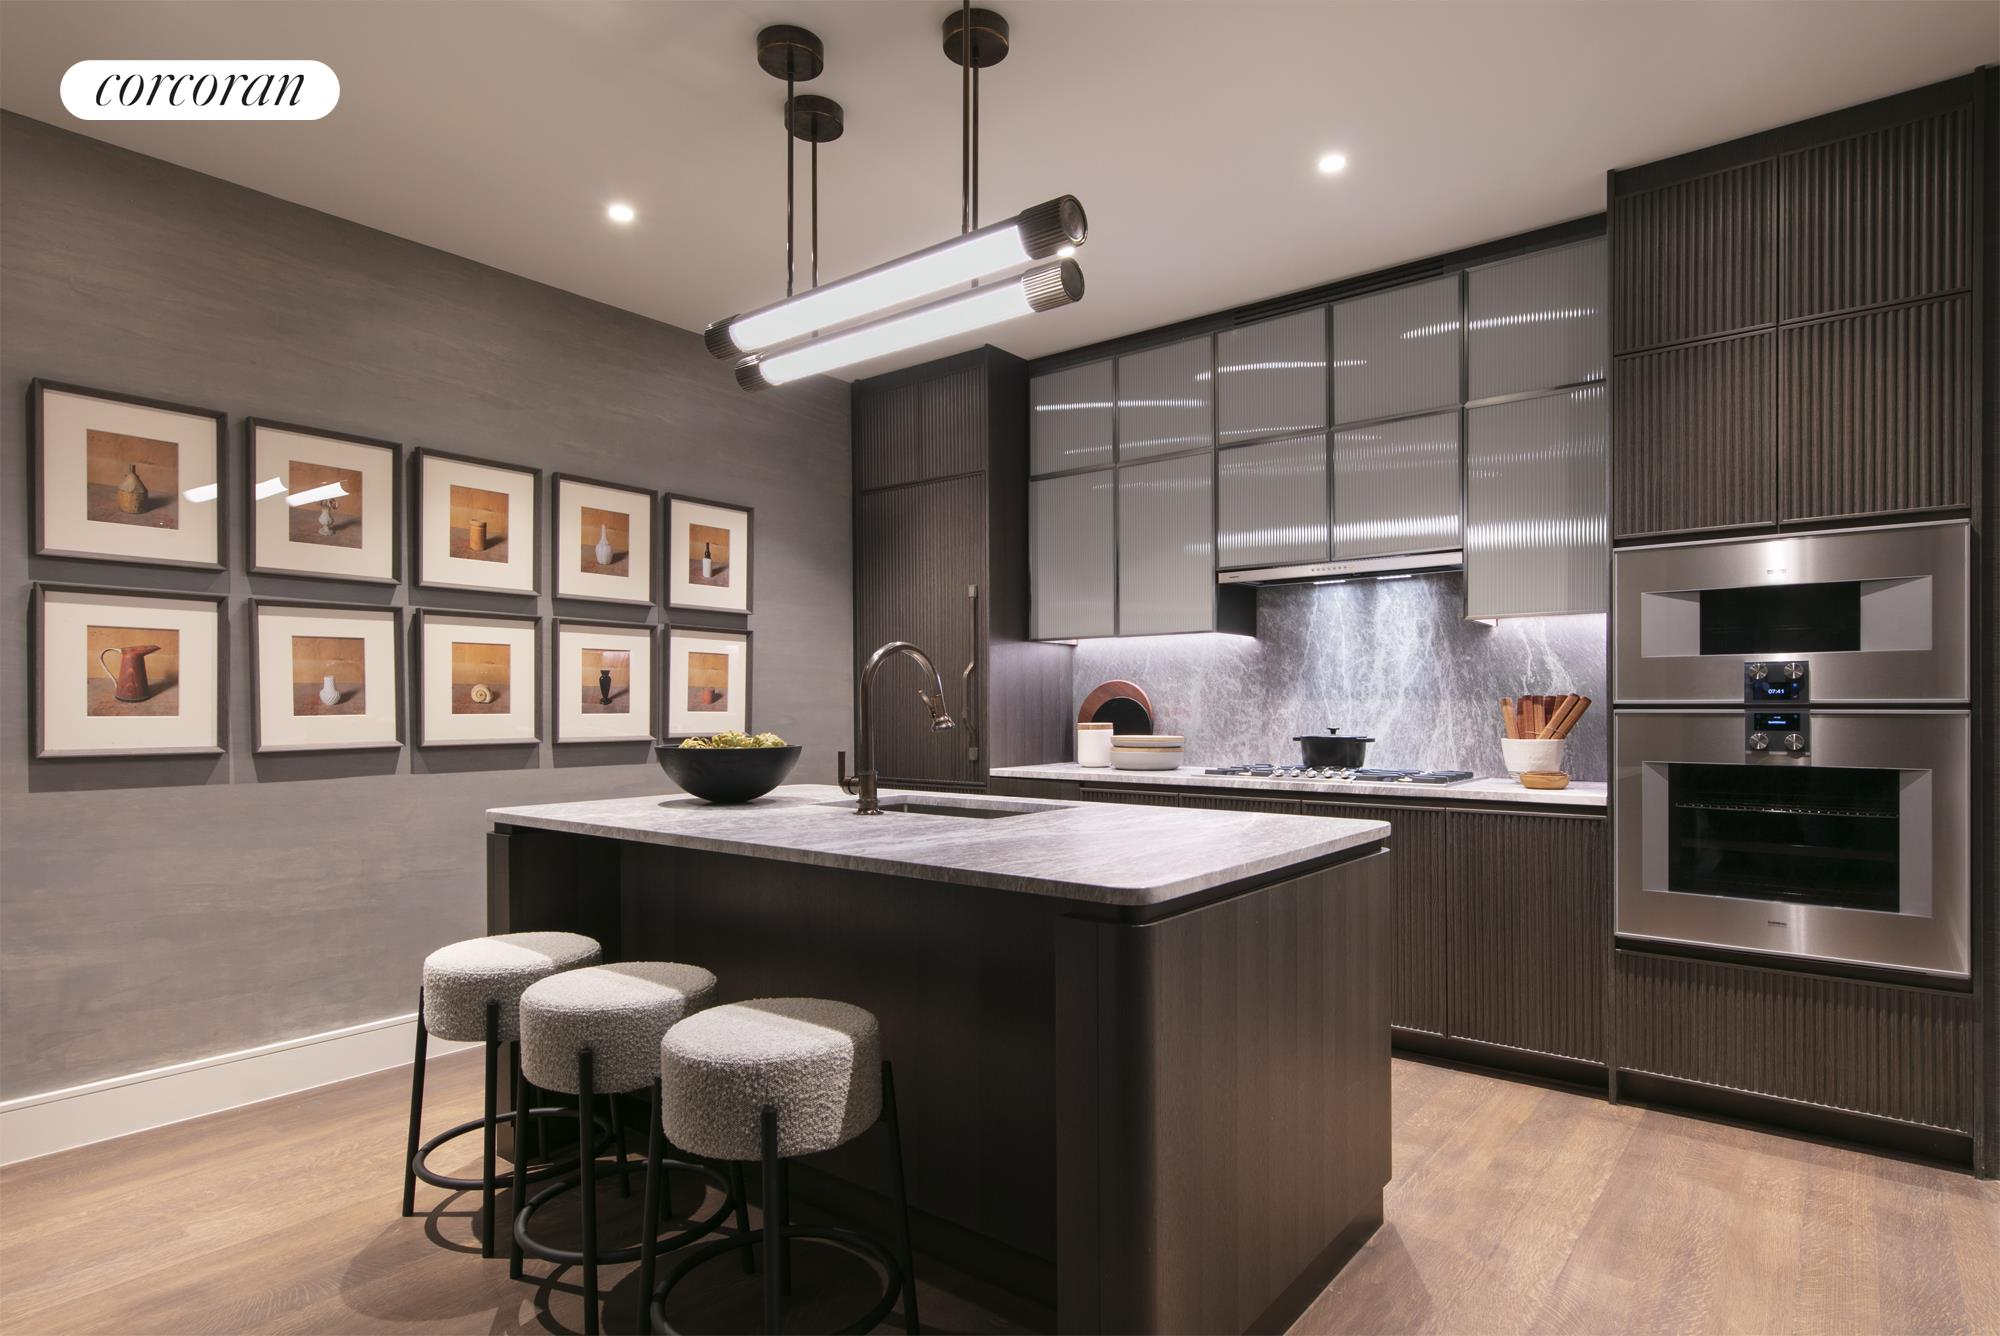 Apartment for sale at 515 West 18th Street, Apt 603